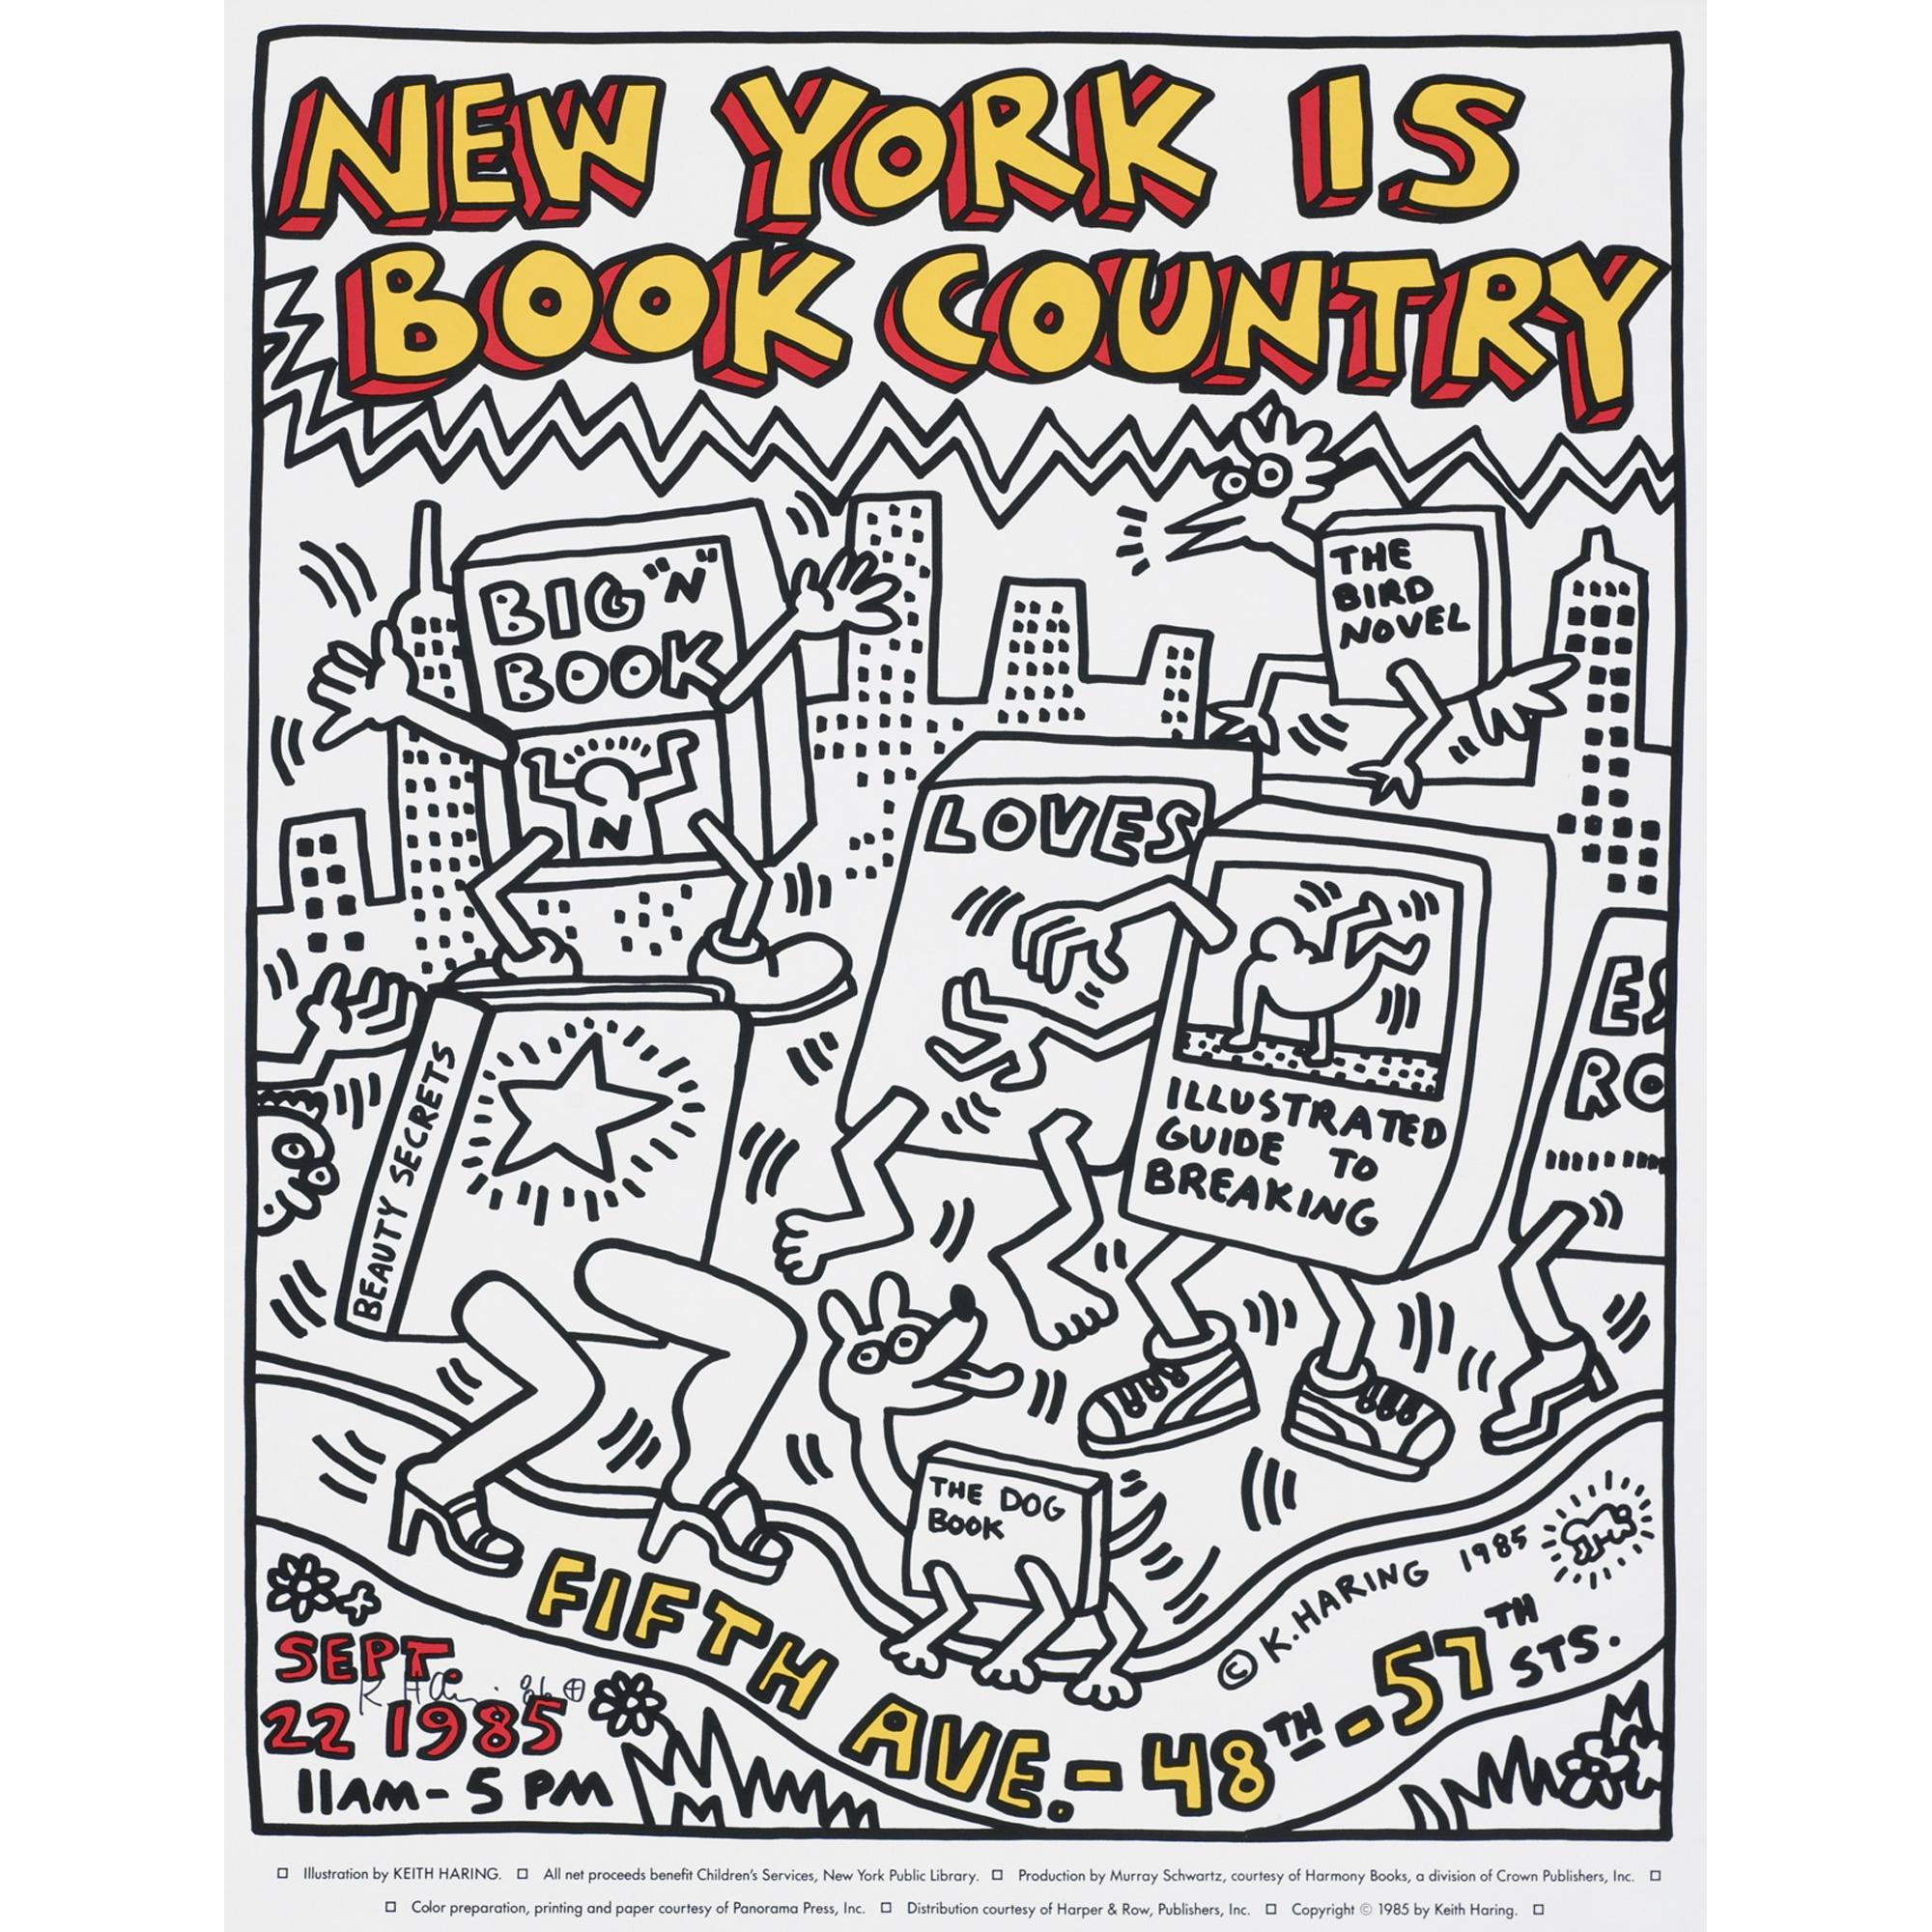 Keith Haring New York is Book Country poster